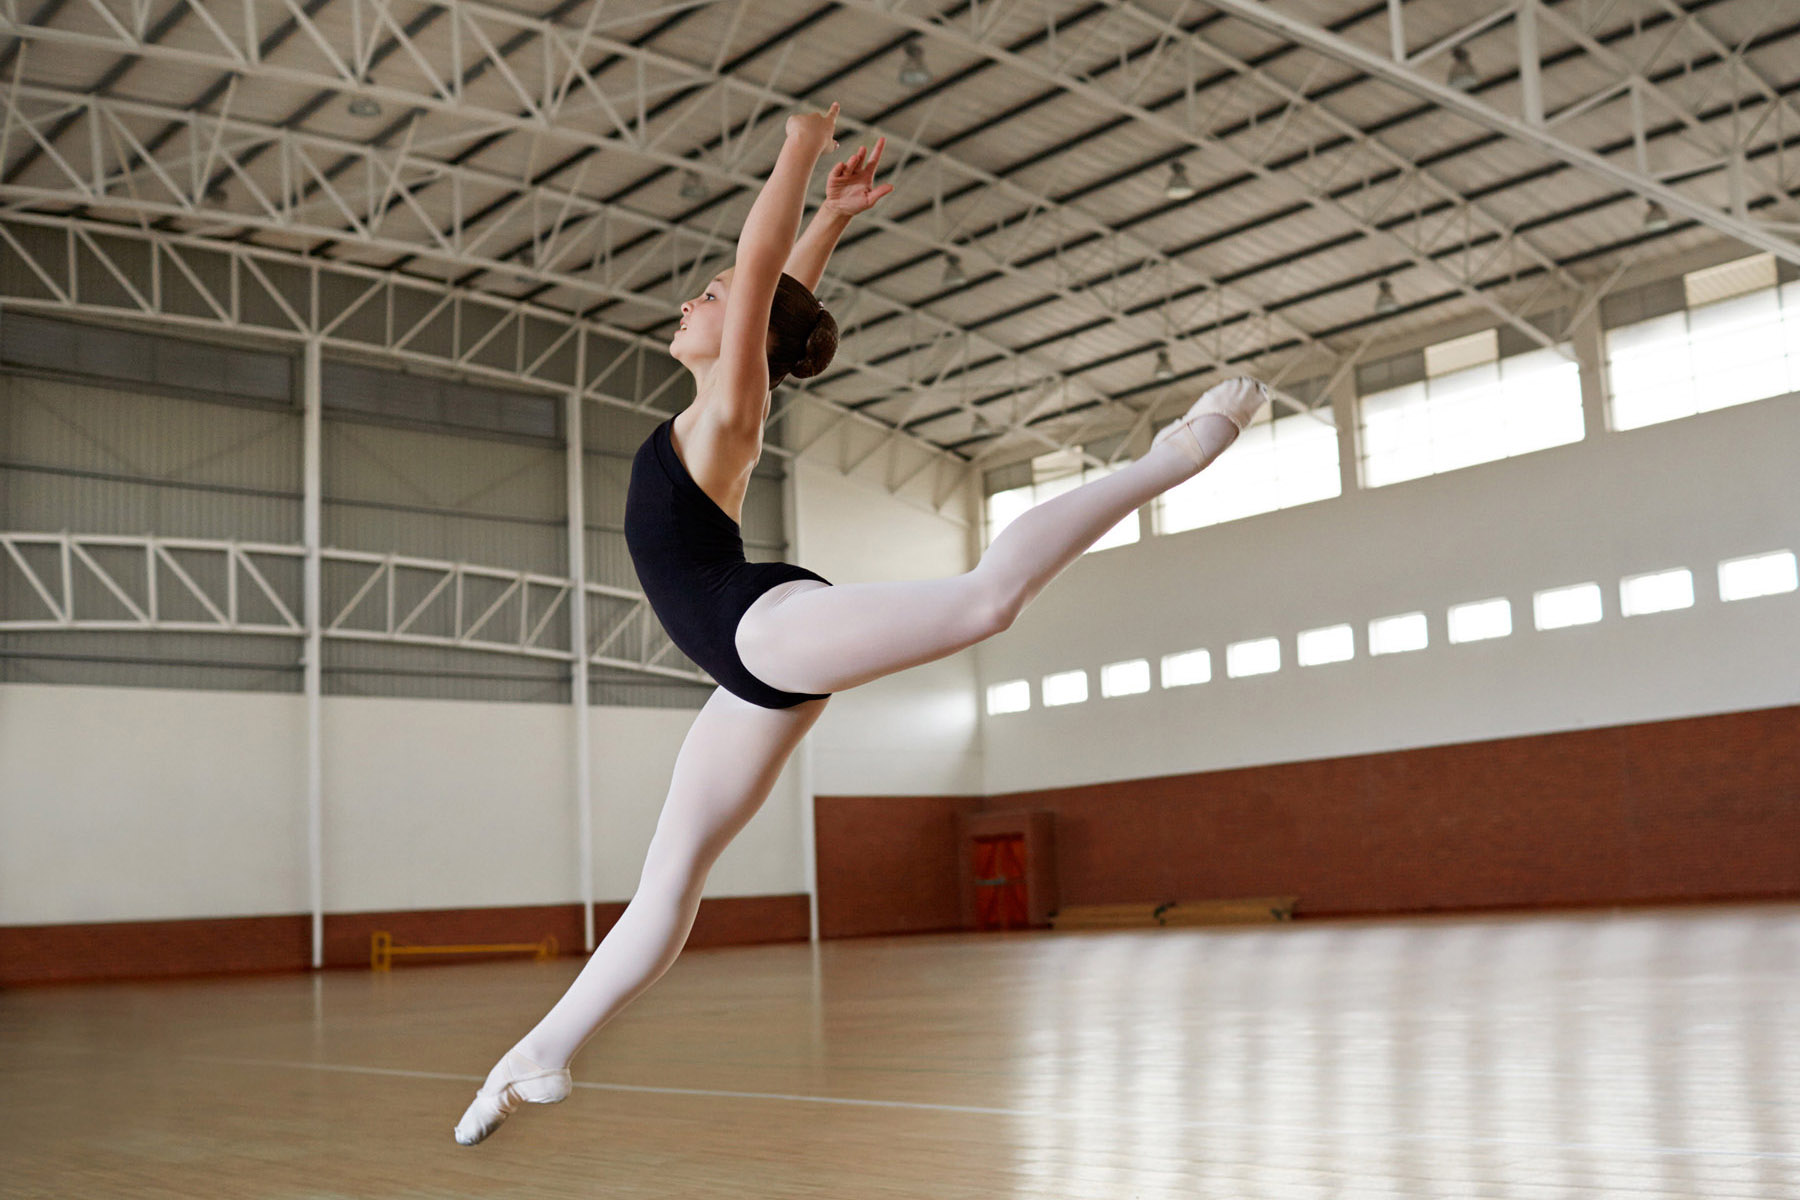 Ballet dancer making elegant jump at practice